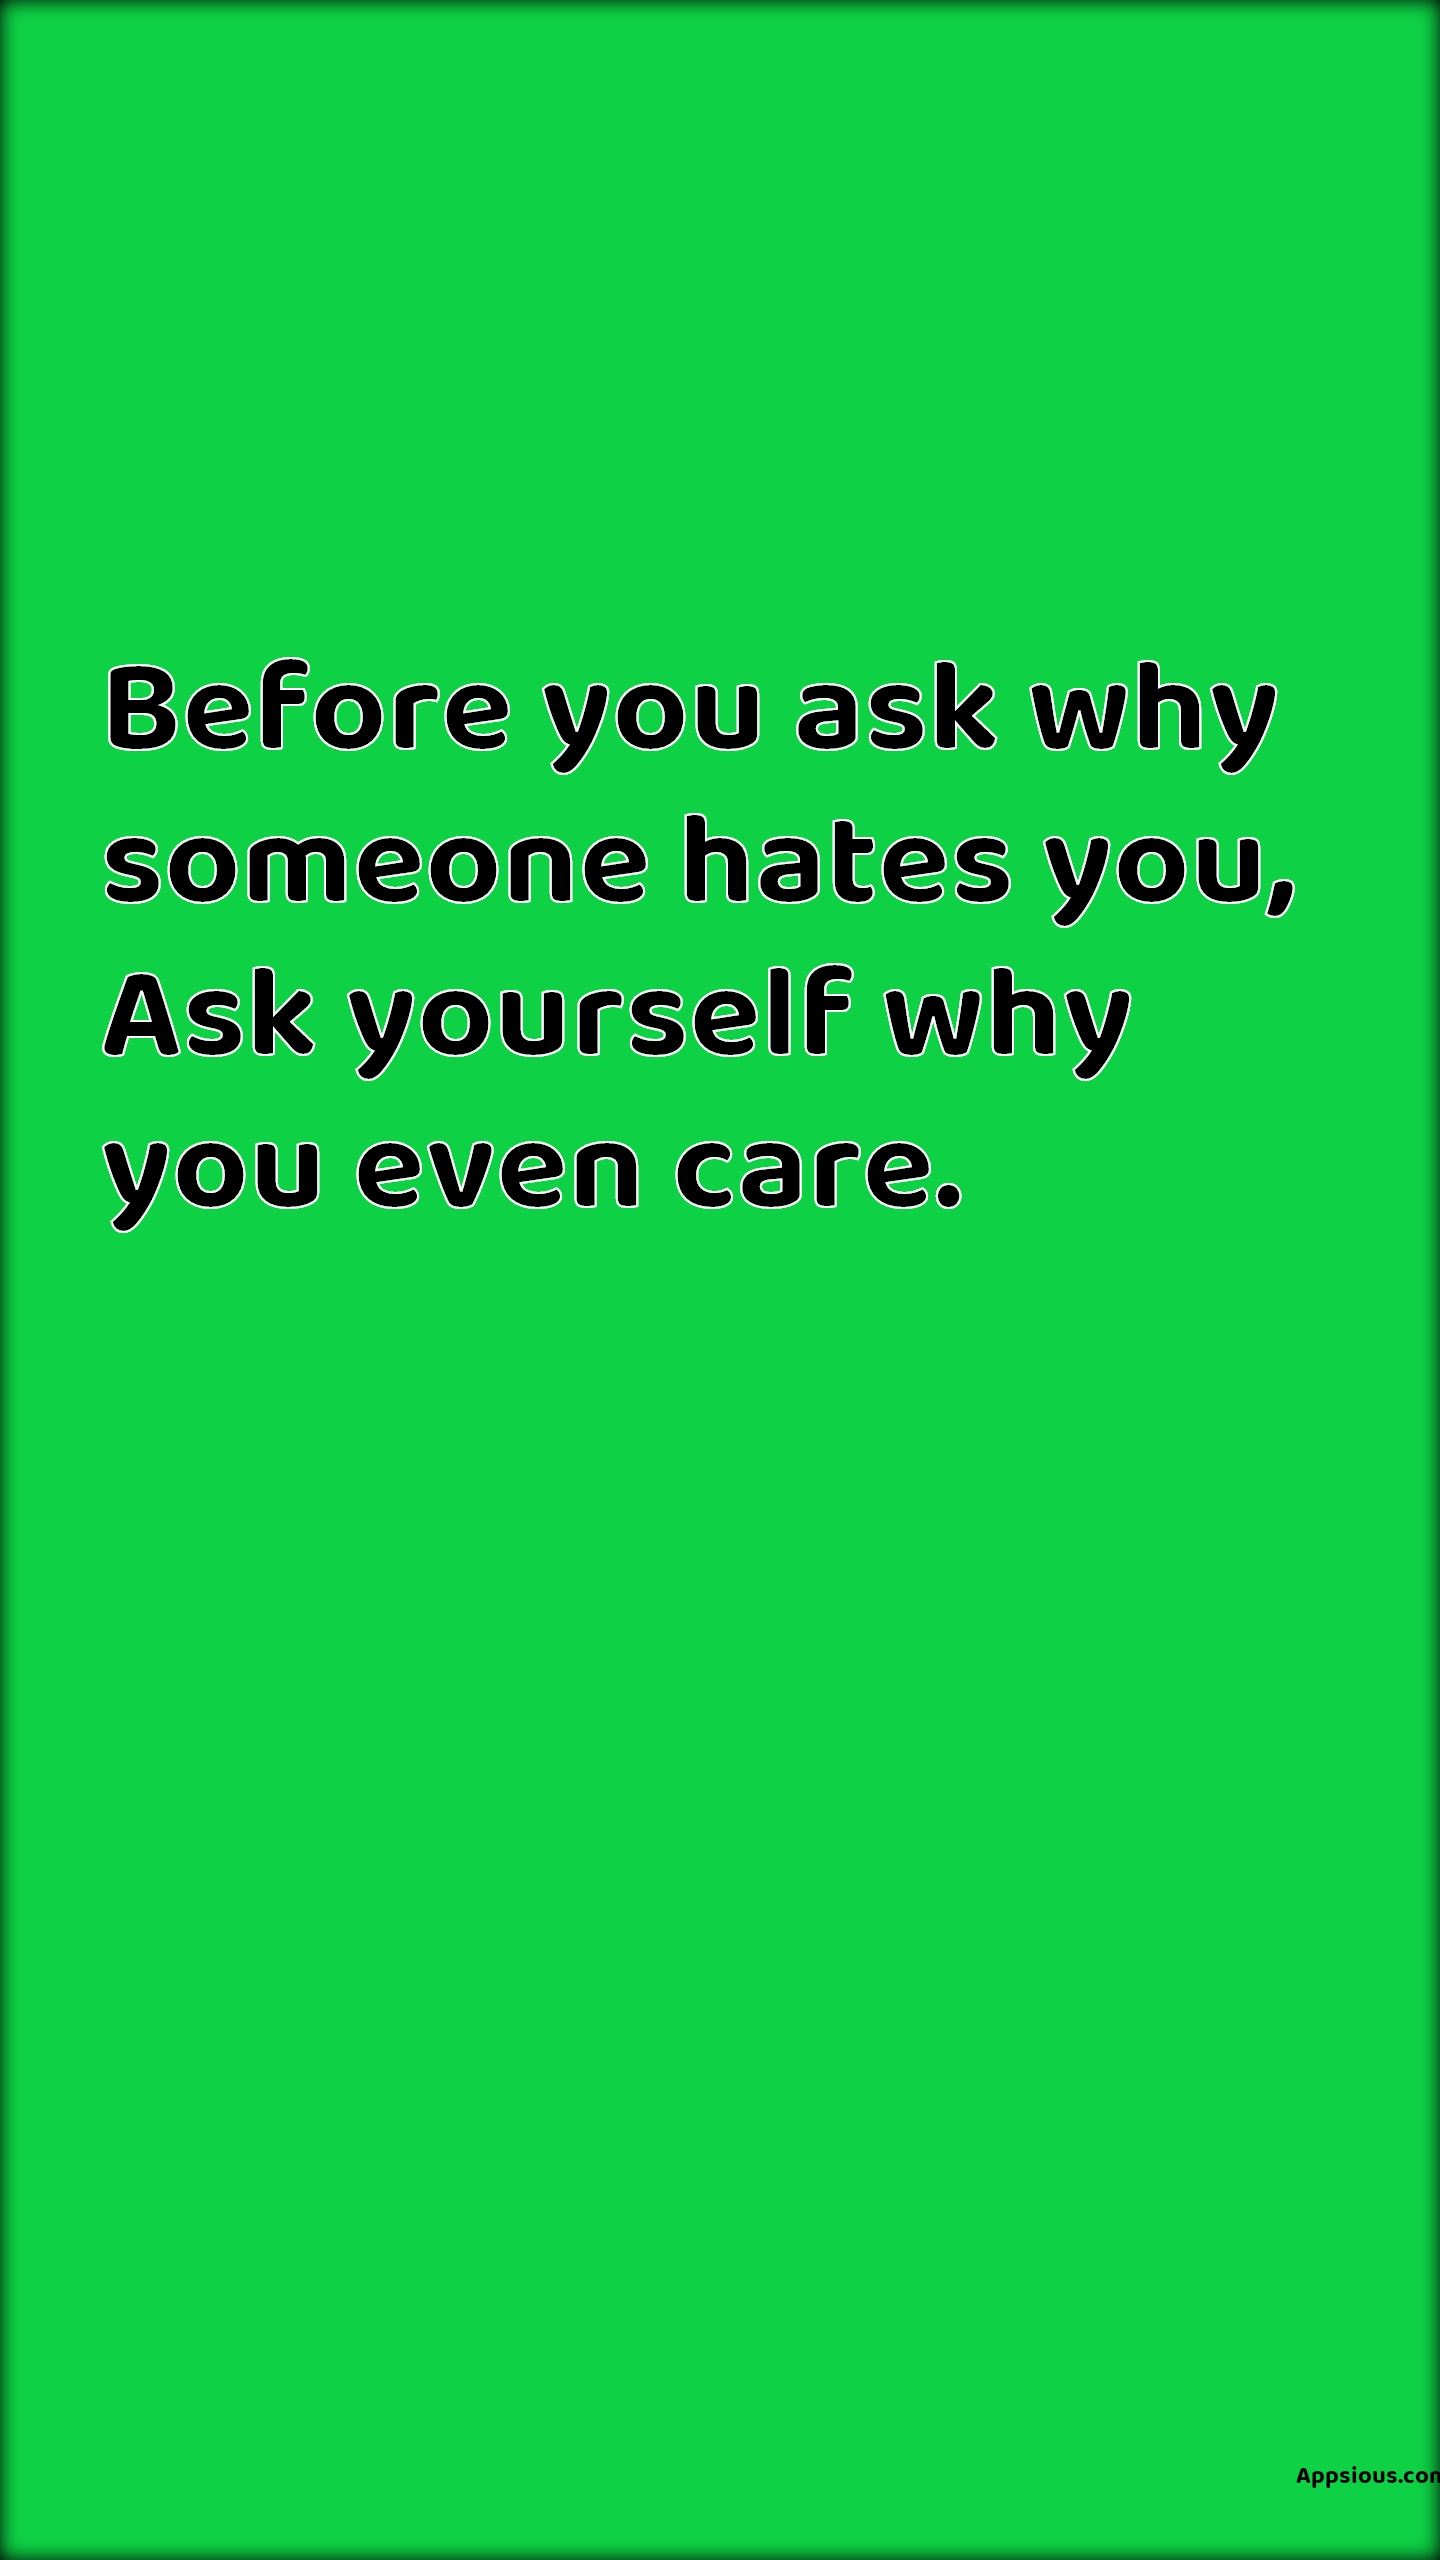 Before you ask why someone hates you, Ask yourself why you even care.